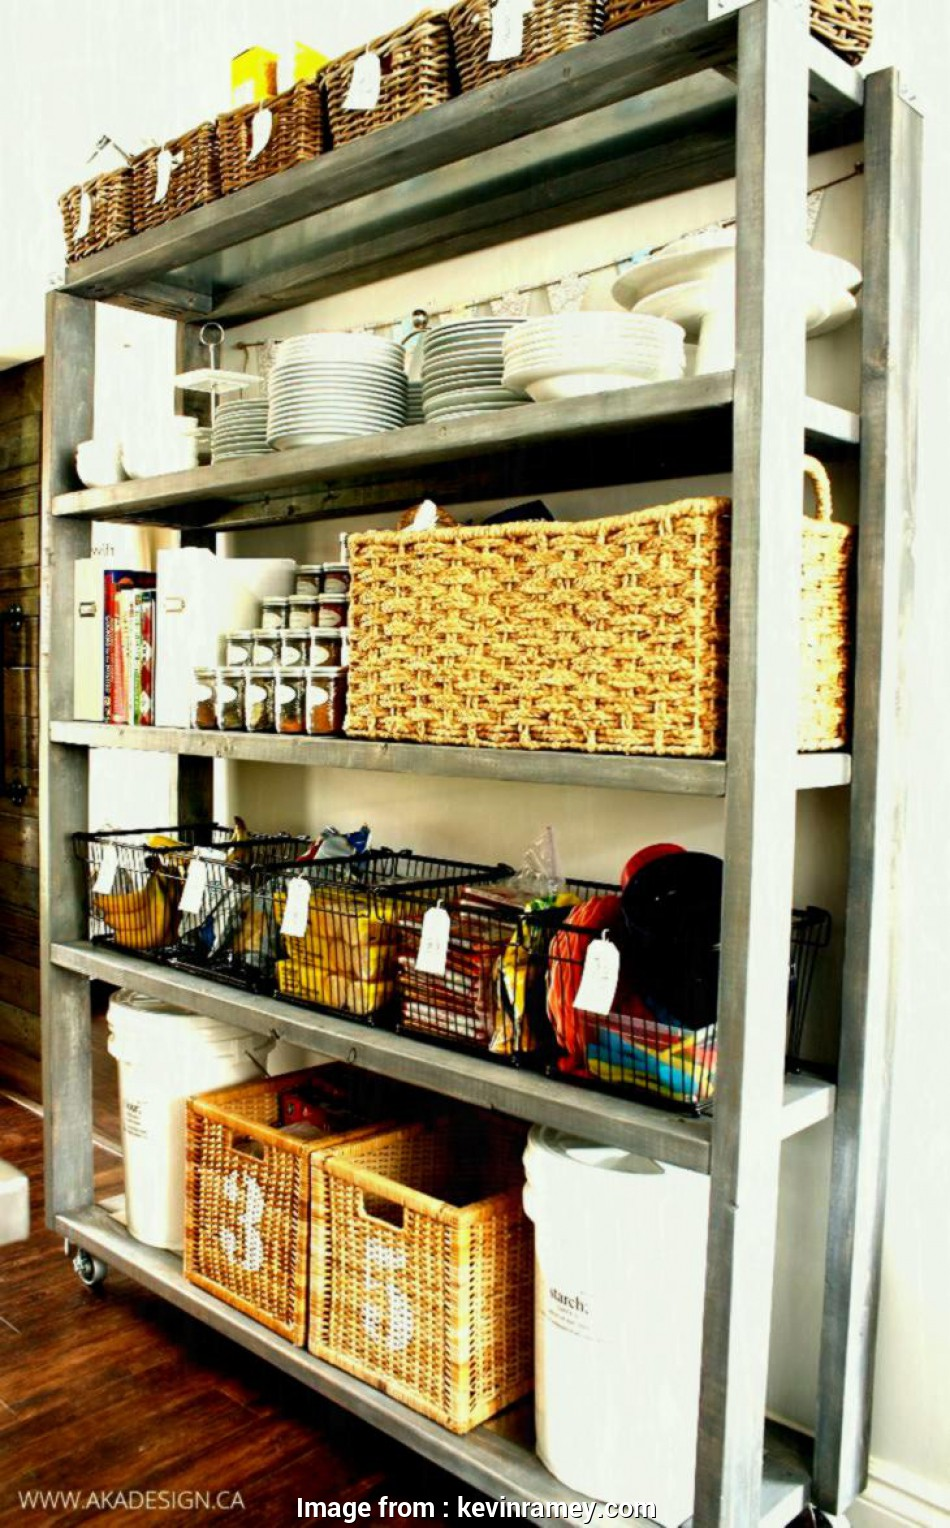 wire shelf storage ideas Kitchen Glass Containers With Lids, Food Storage Wire Shelves Ideas Ikea Cabinets Amazon Wire Shelf Storage Ideas New Kitchen Glass Containers With Lids, Food Storage Wire Shelves Ideas Ikea Cabinets Amazon Images